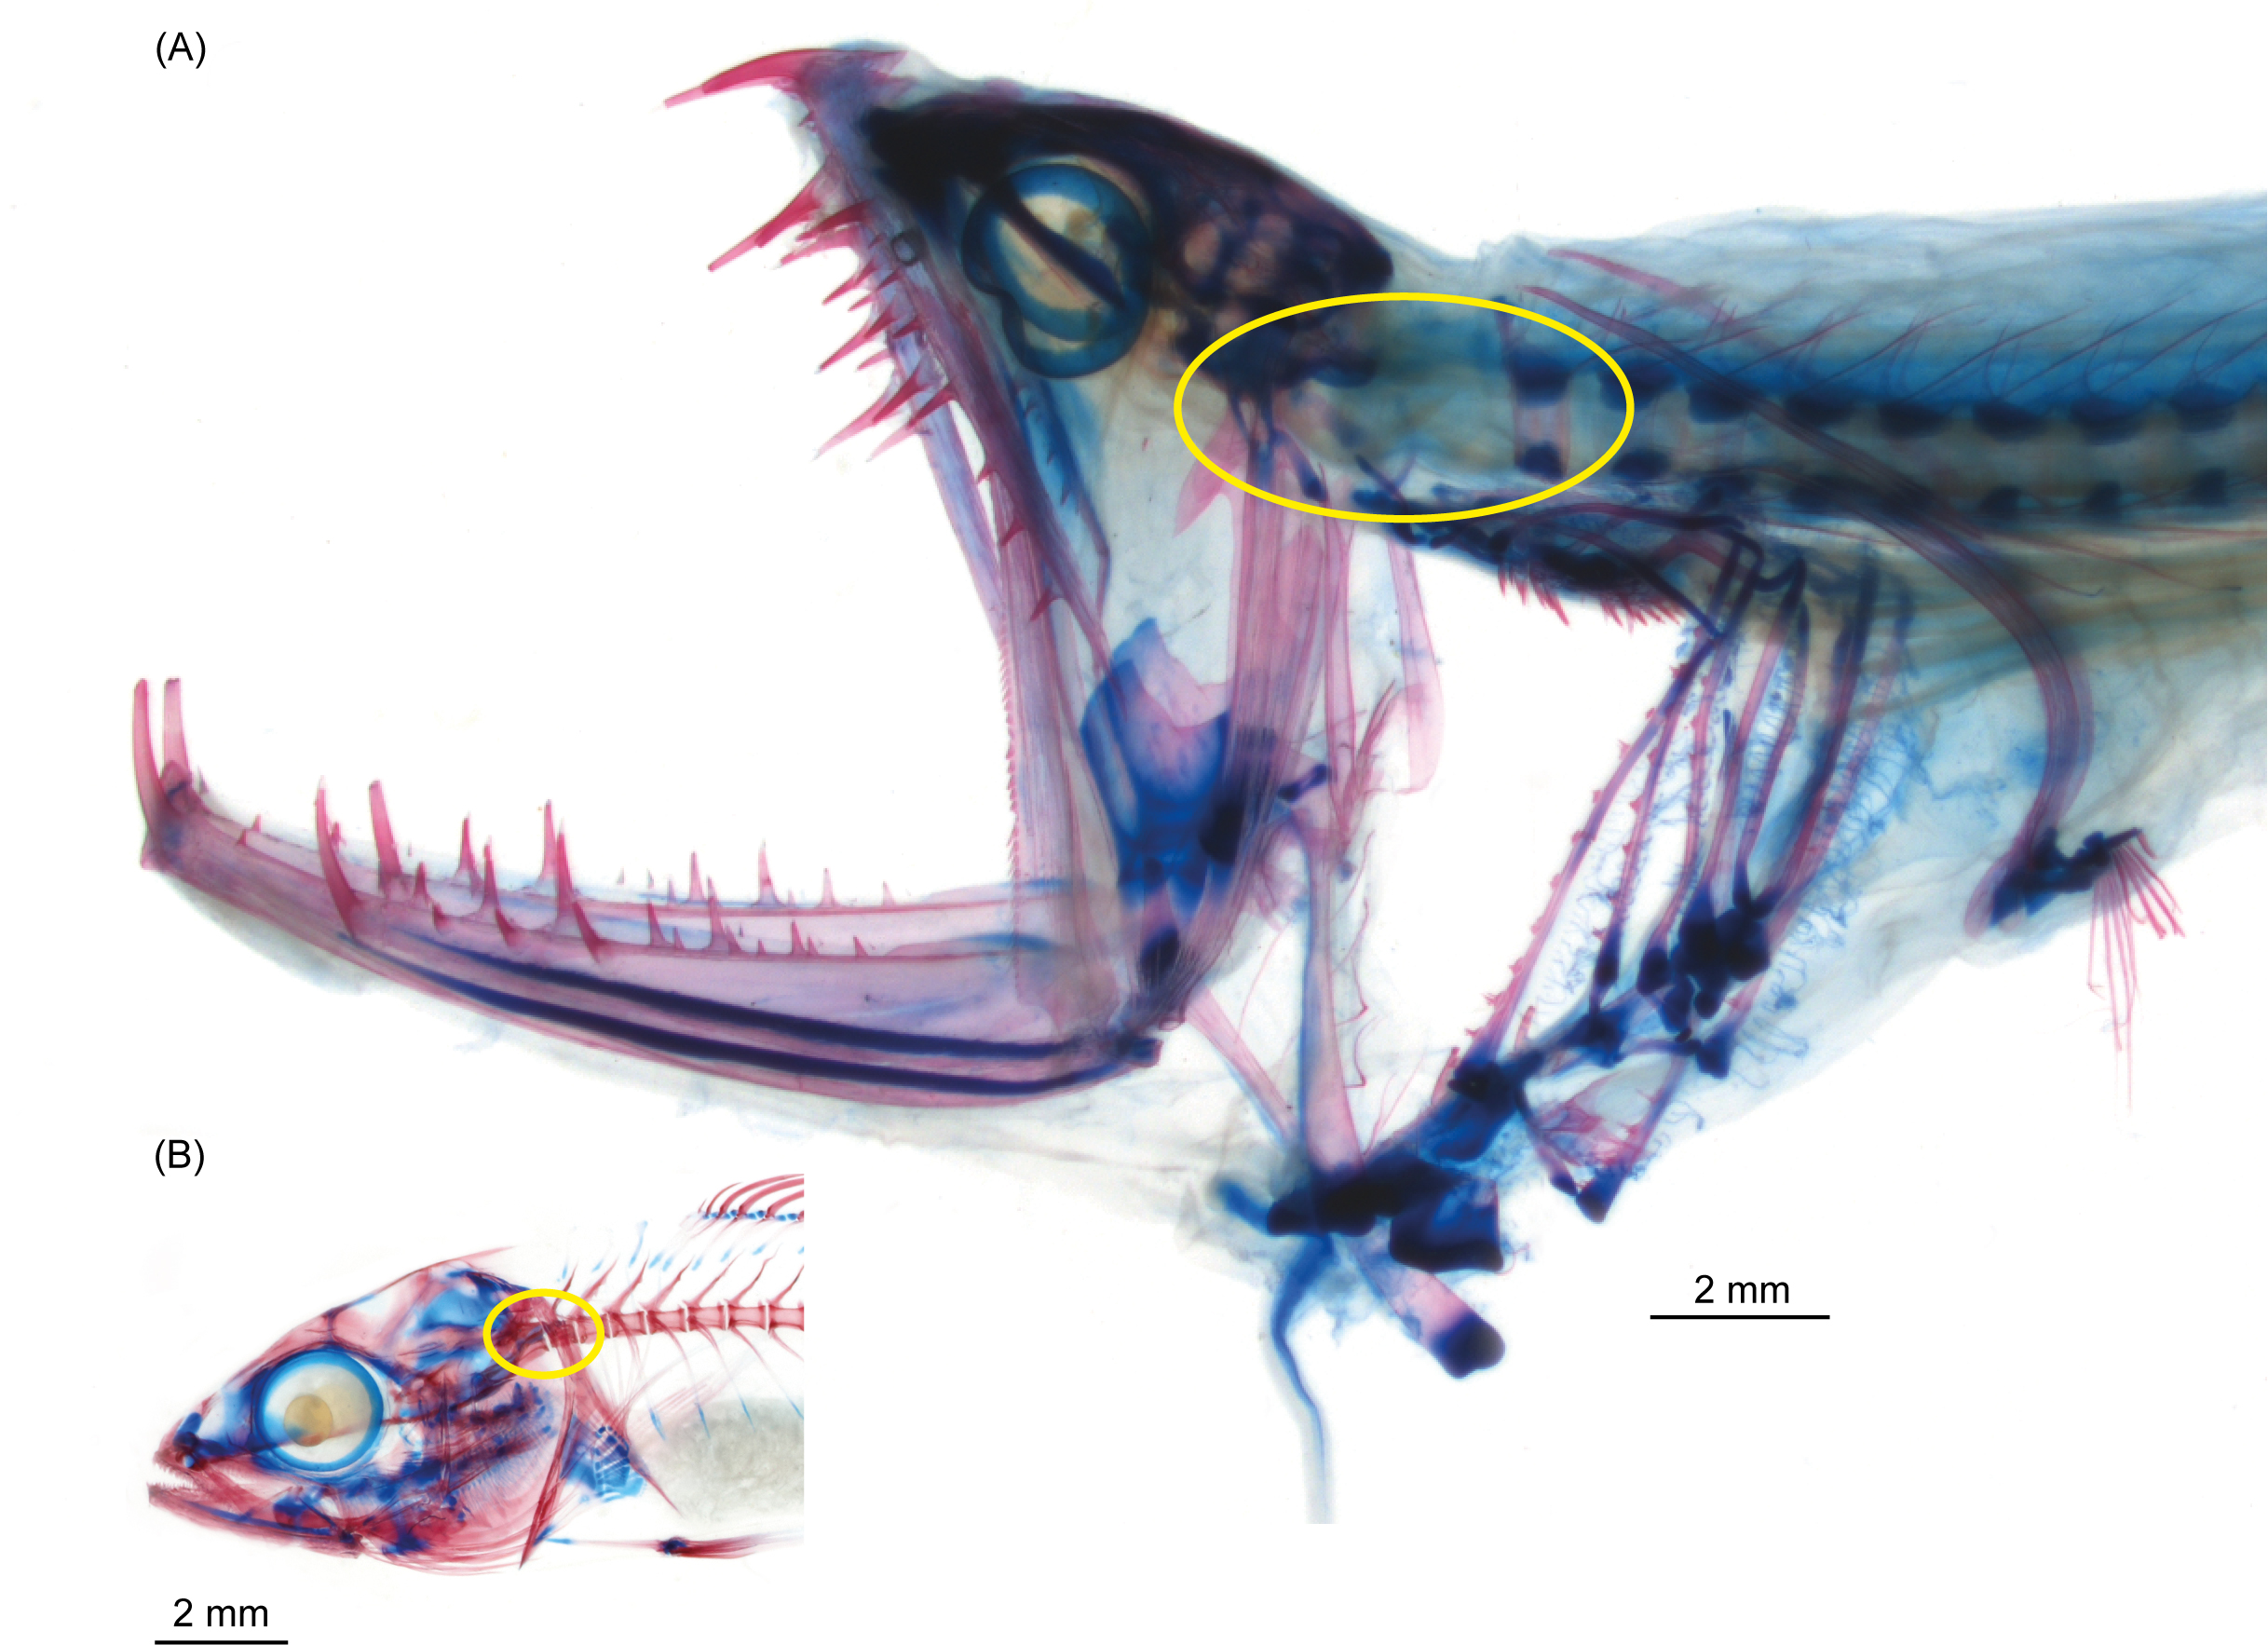 Odd Anatomy Flexible Joint Between Skull And Spine Allow Dragonfish Snake Skeleton Diagram The At Very This Image Shows Of A Barbeled With True Functional Head In Contrast To Relatively Inflexible Connection